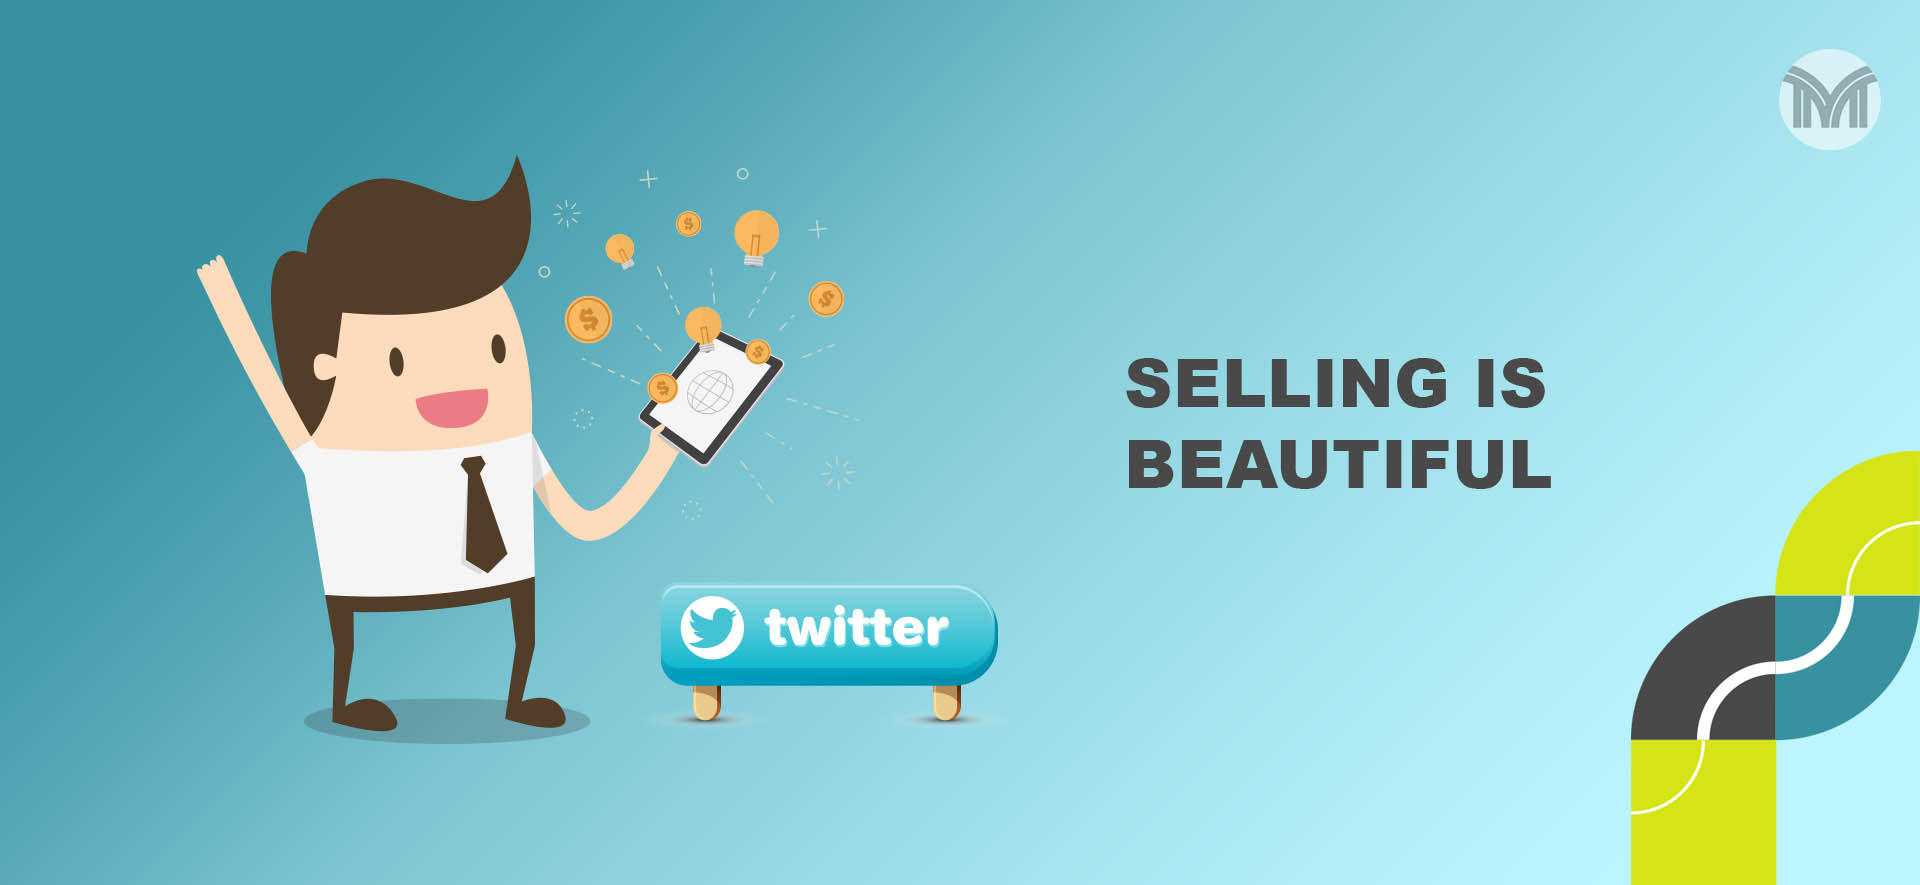 250929719dbb Selling is beautiful | Sales training in India | Mercuri India